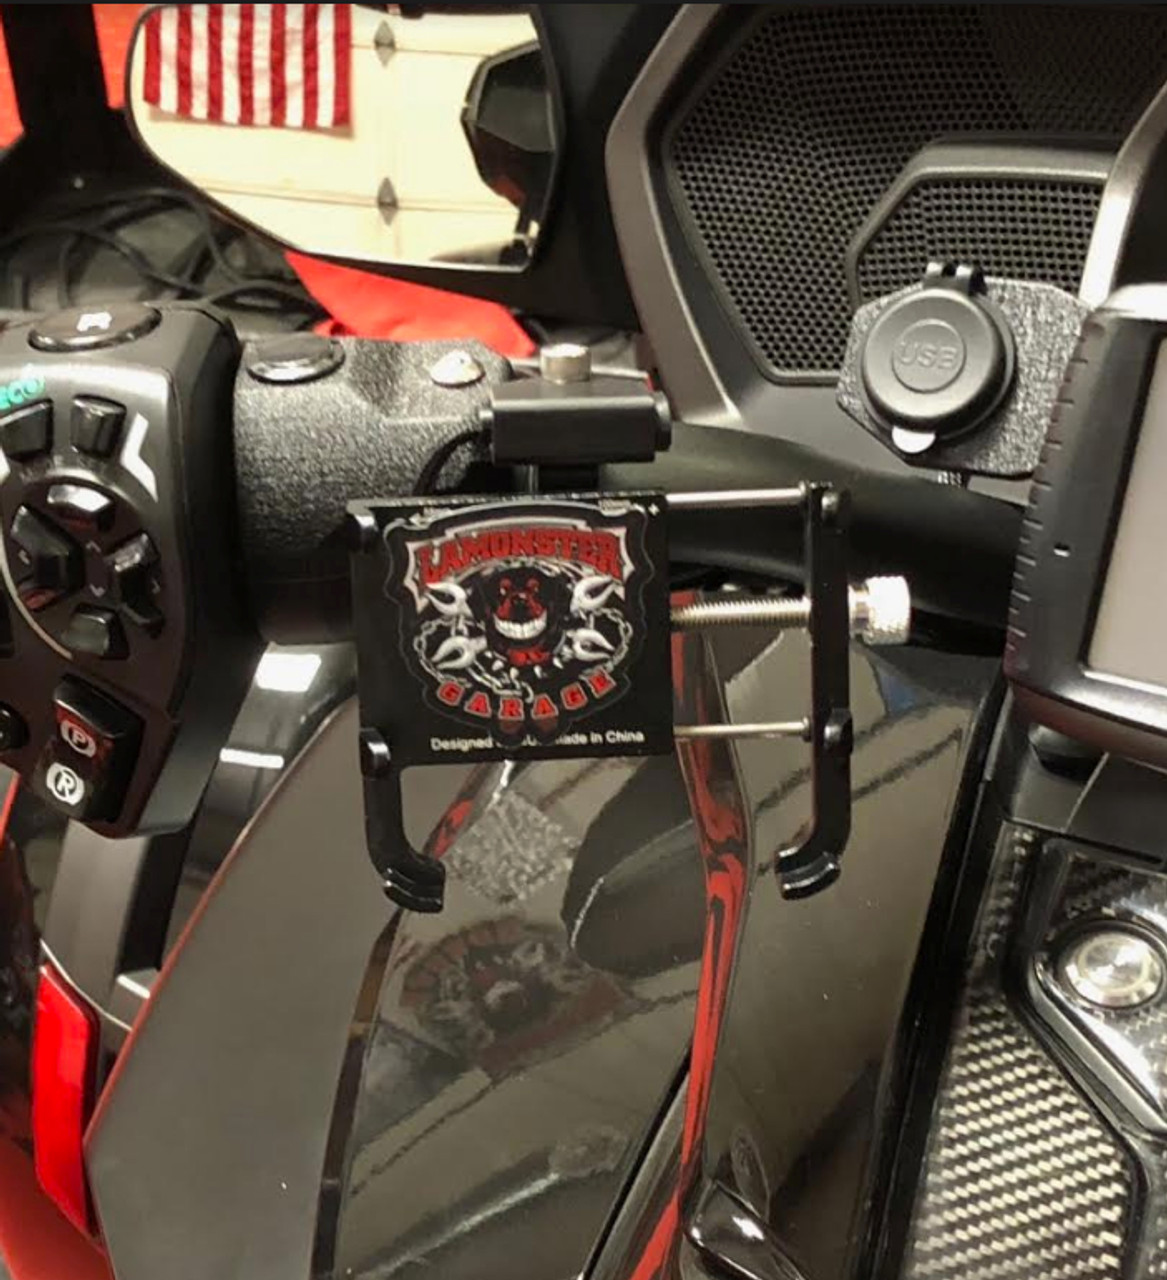 """Phone Holder / USB Combo (LG-4015-3091-3092) by Lamonster FITS ALL F3 Models, F3, F3-S, F3-T, F3-LTD  Also Fits any  Motorcycle Handle Bars that are 7/8"""", 1"""", 1 1/8"""" (Shown on a F3-T)"""